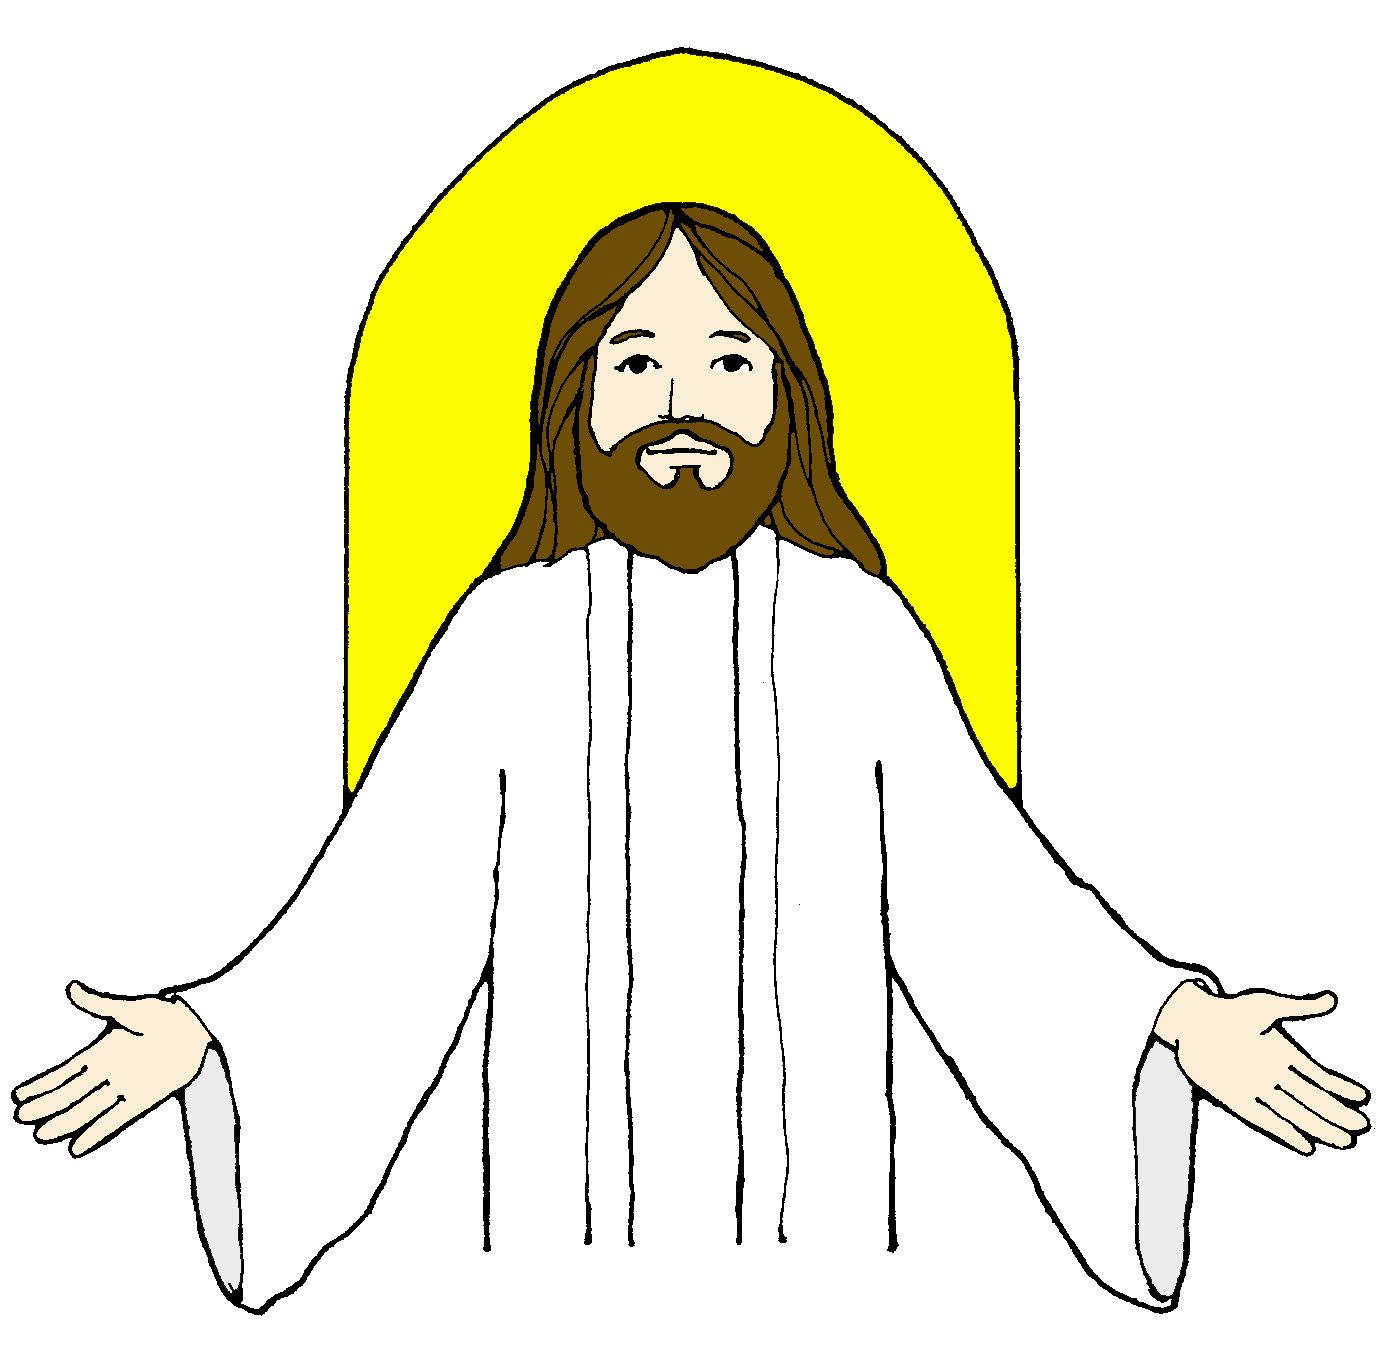 christ silhouette clip art at getdrawings com free for personal rh getdrawings com jesus clipart free download baby jesus clipart free